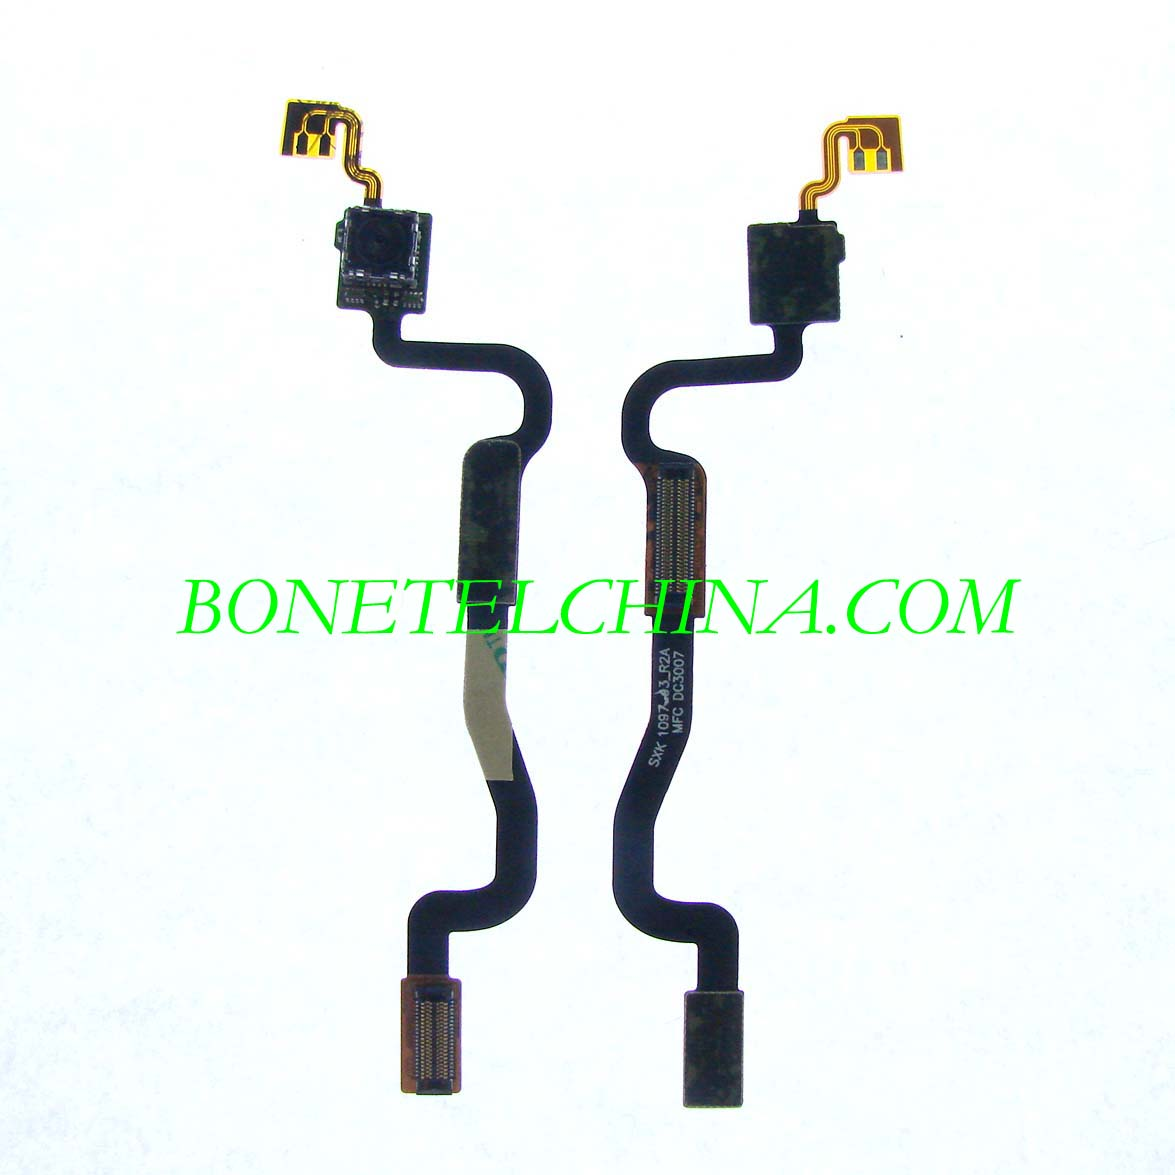 Z310 Mobile phone Flex Cables for Sony Ericsson